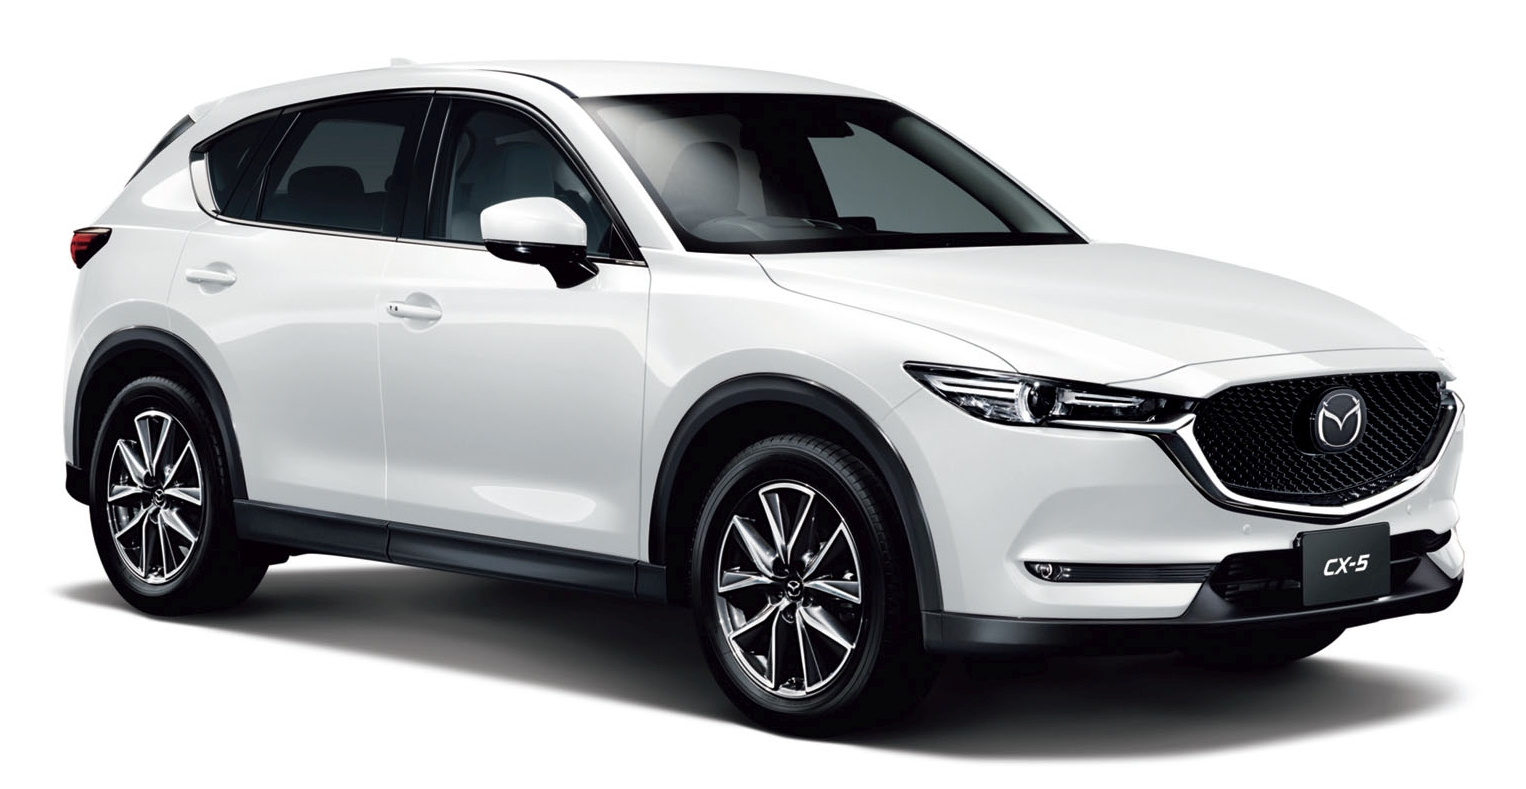 2017 Mazda Cx 5 Goes On Sale In Japan From Rm94k Image 592251